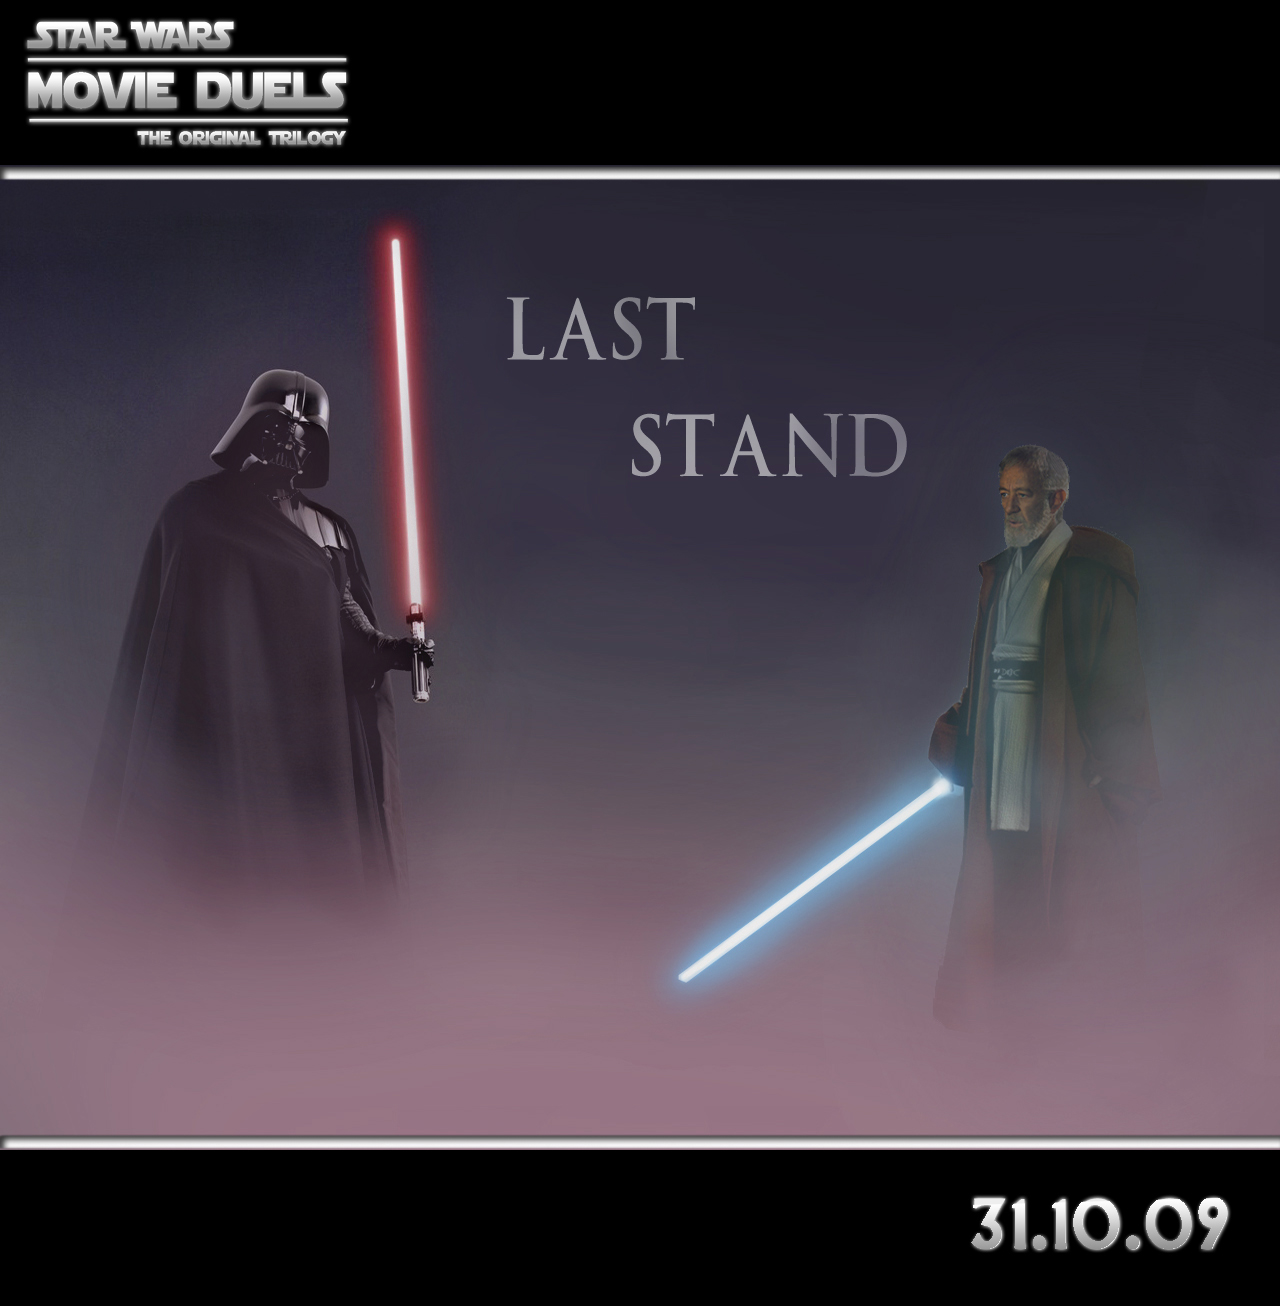 Star Wars Movie Duels - TOT - Demo - V2 file - Mod DB